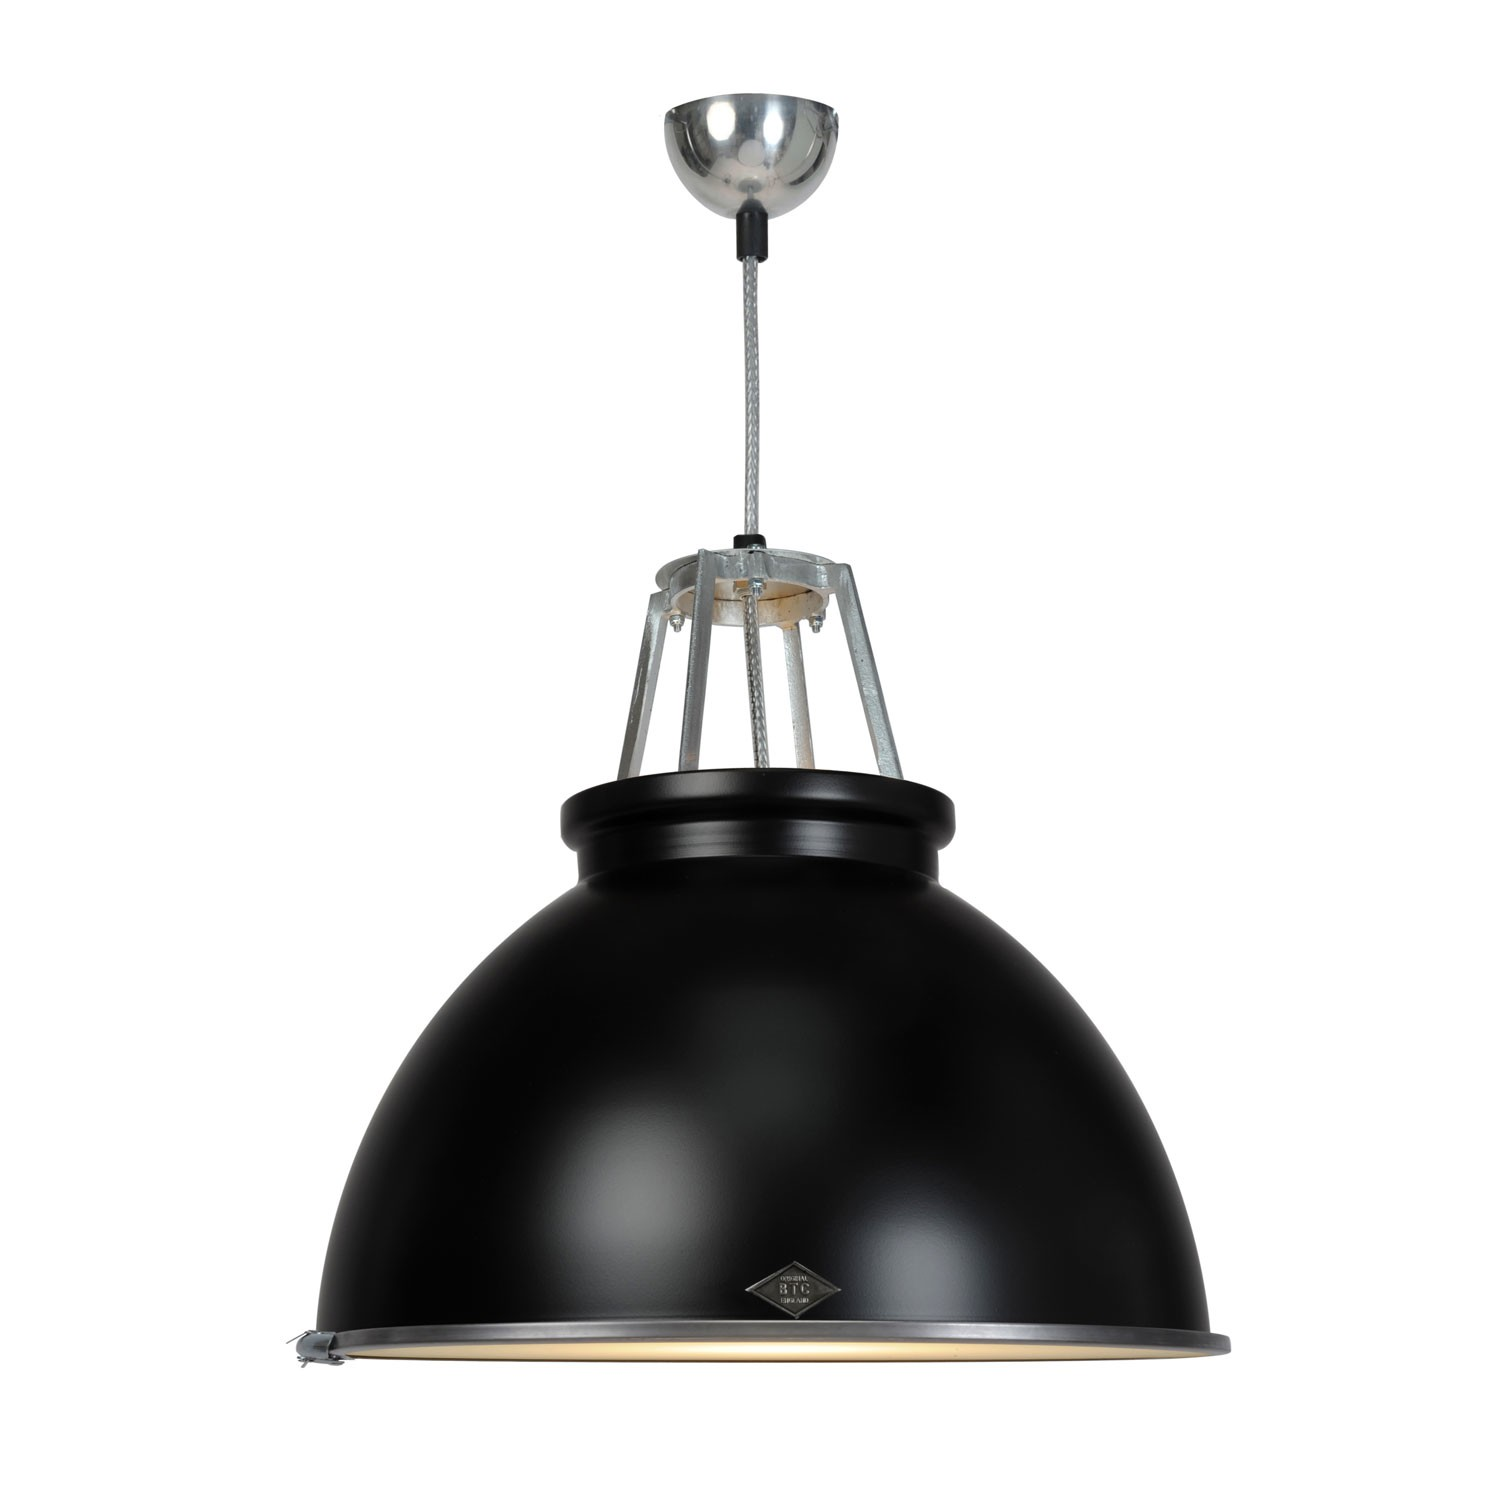 Titan Size 3 Pendant Light Black with Etched Glass